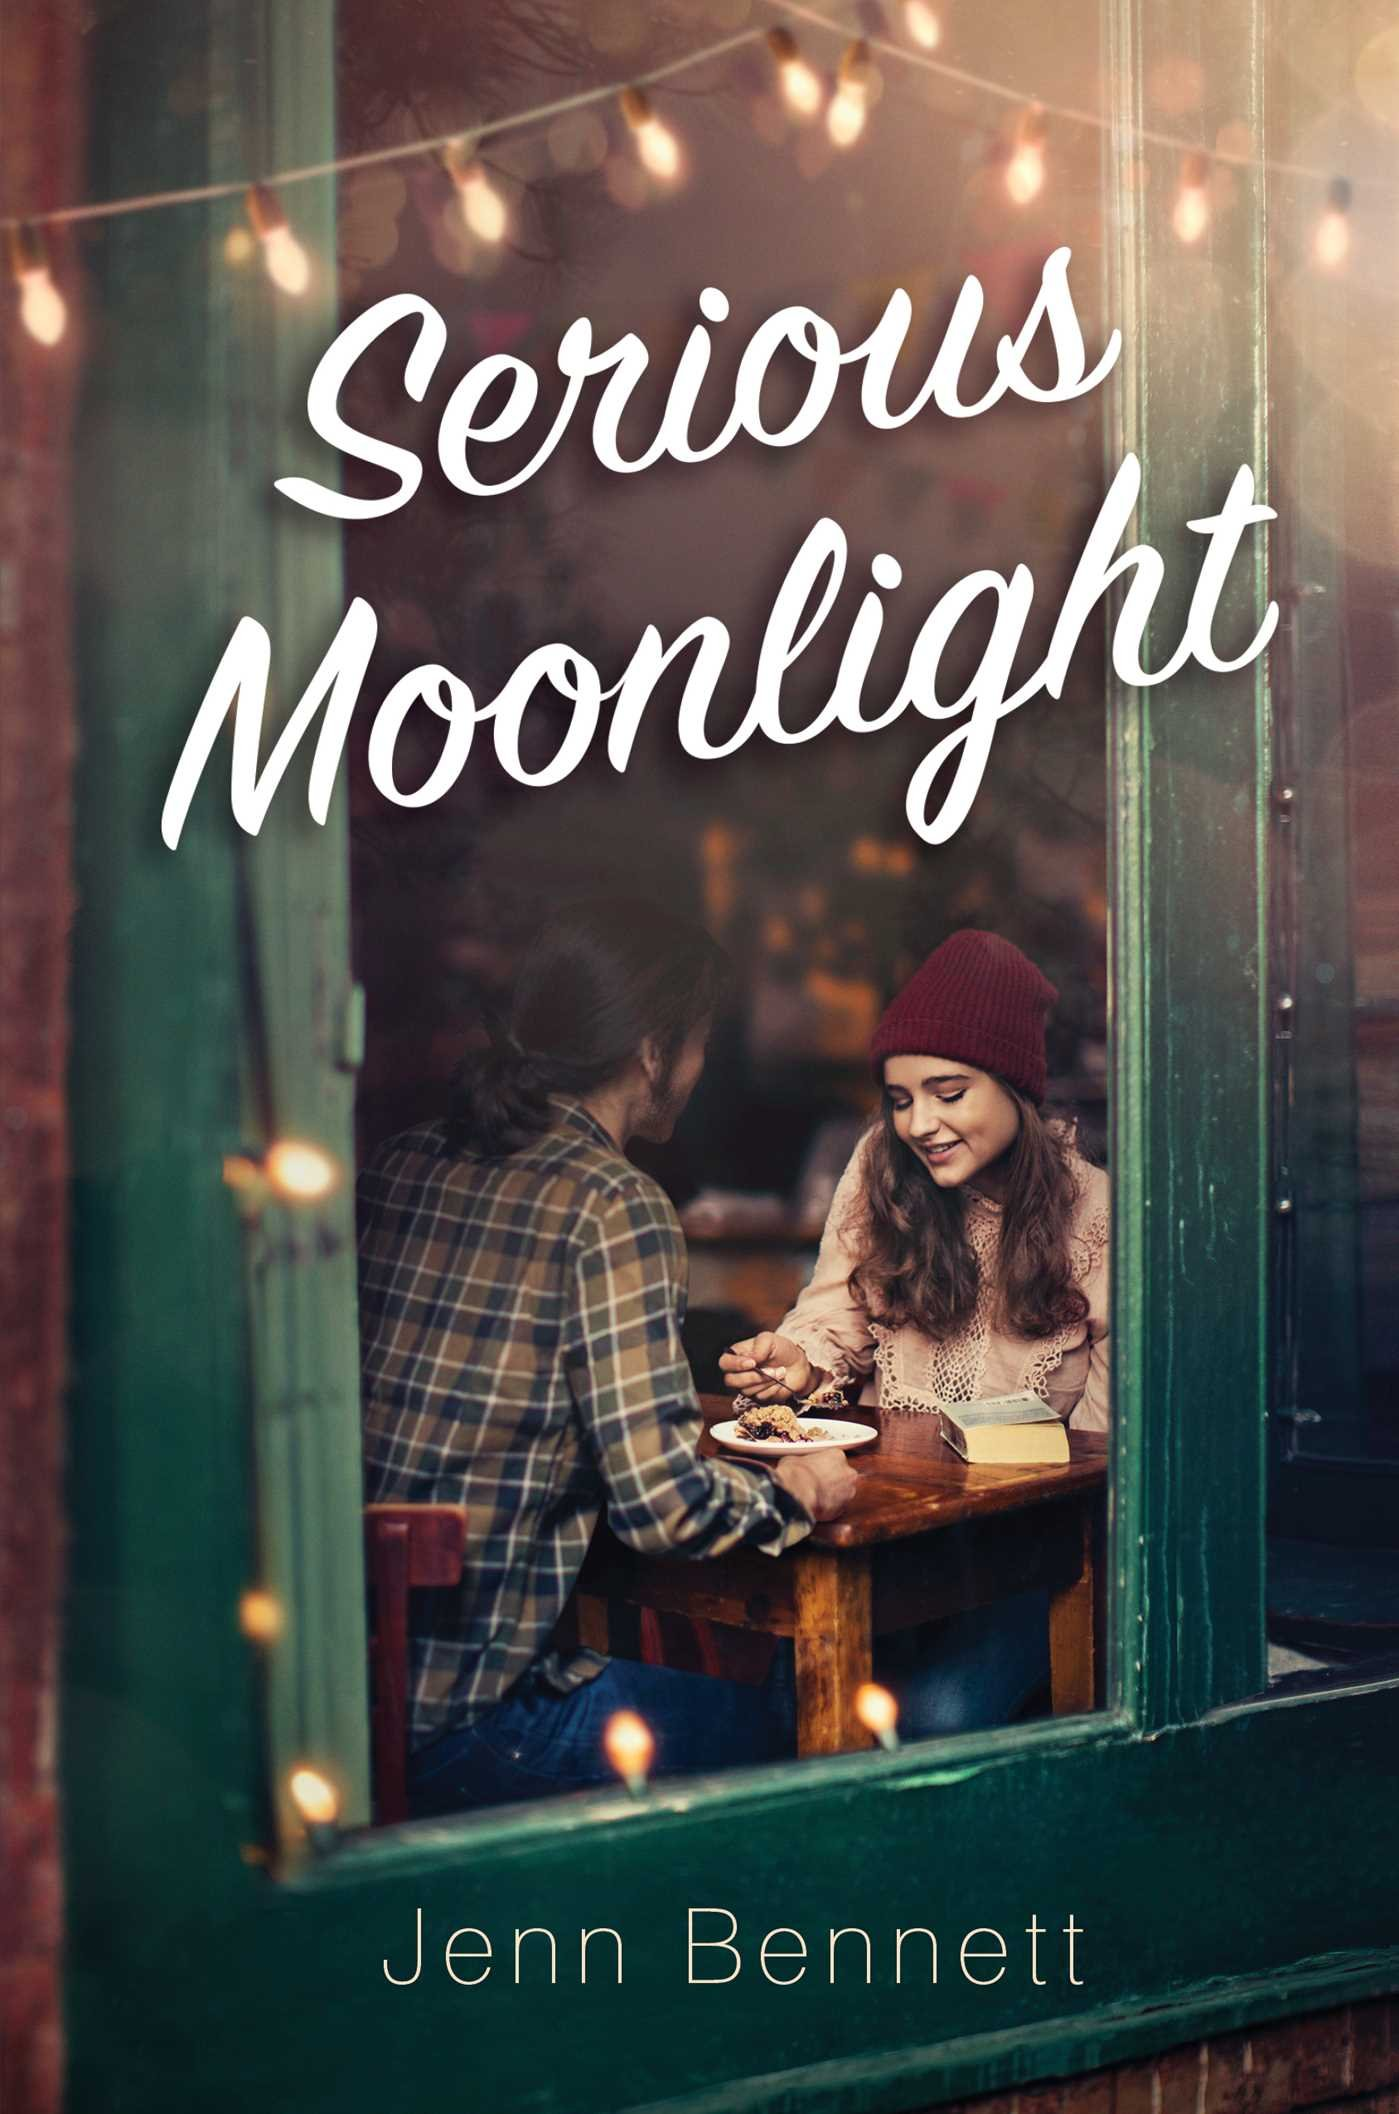 Amazon.com: Serious Moonlight (9781534425149): Bennett, Jenn: Books